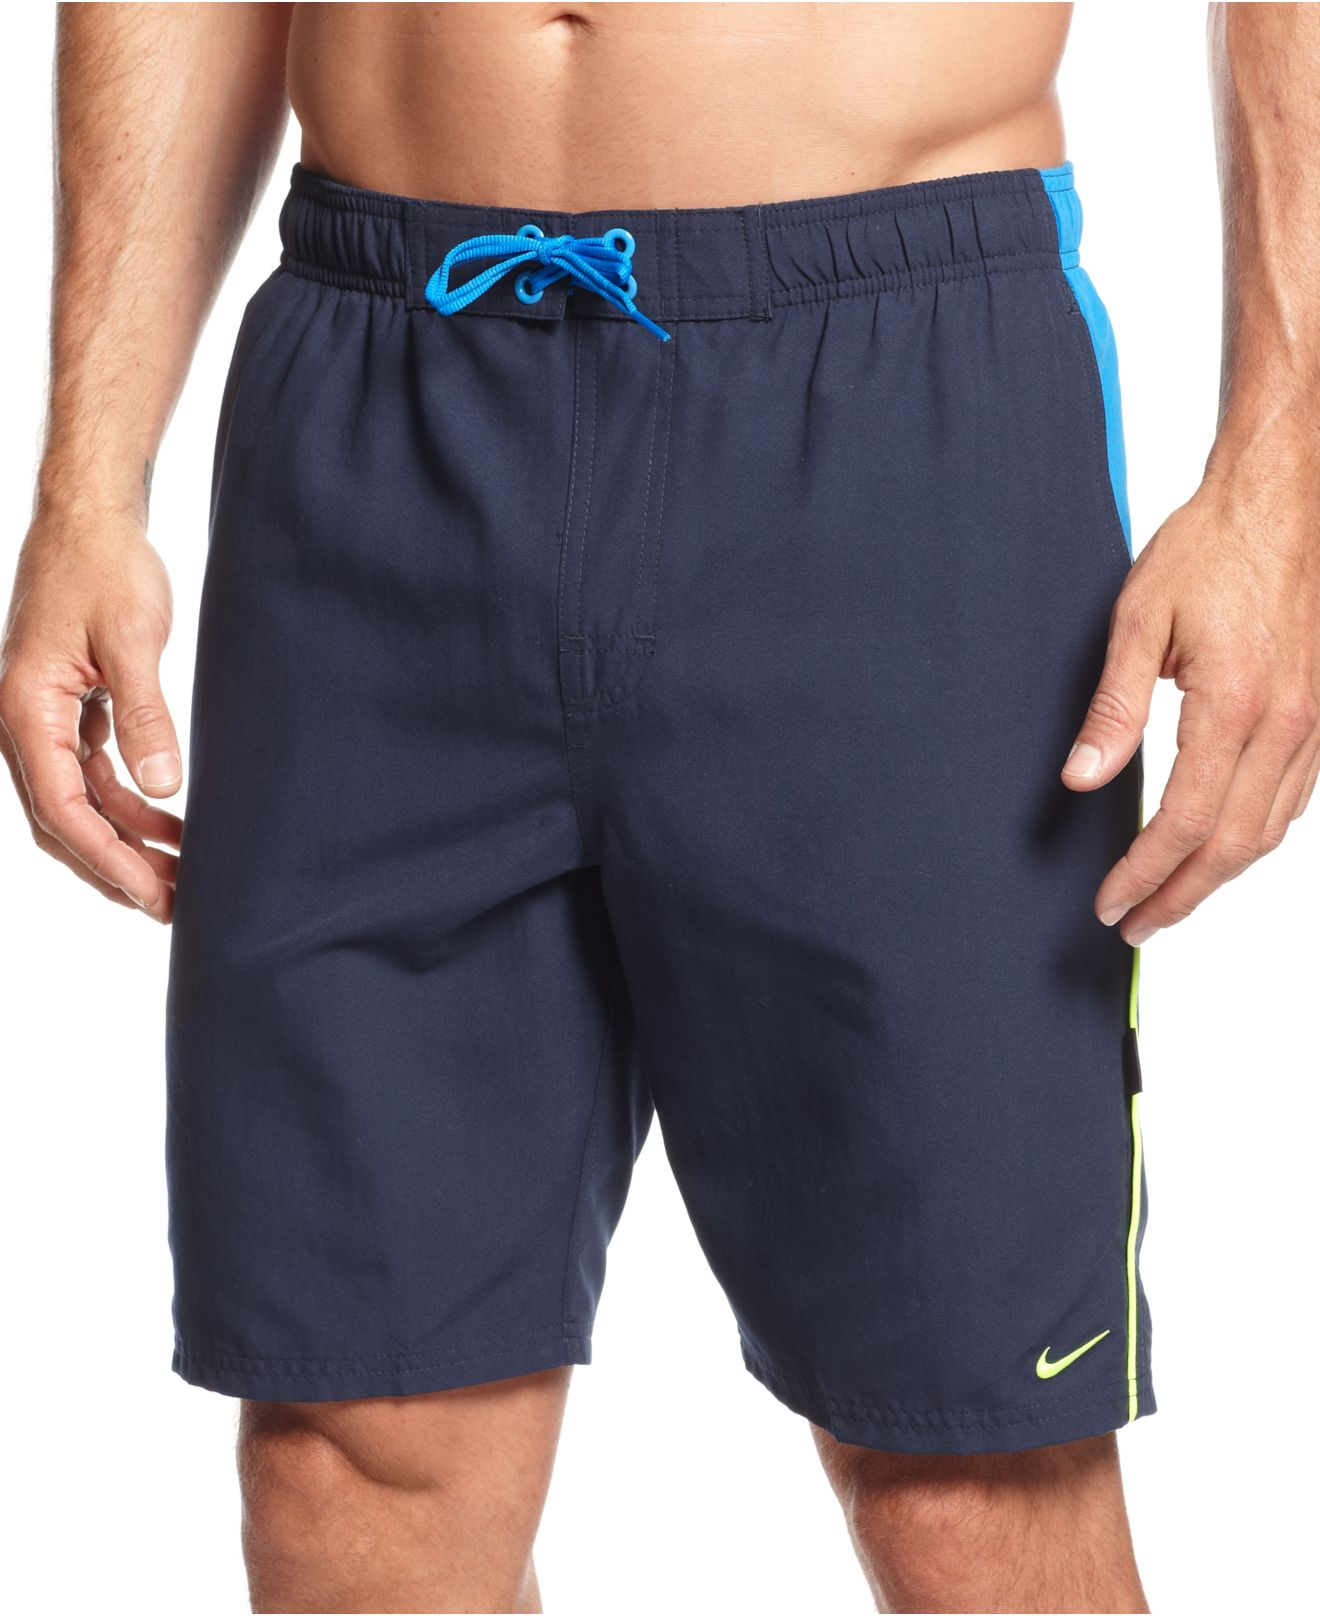 Lyst - Nike Big And Tall Core Contend Volley Swim Trunks ...